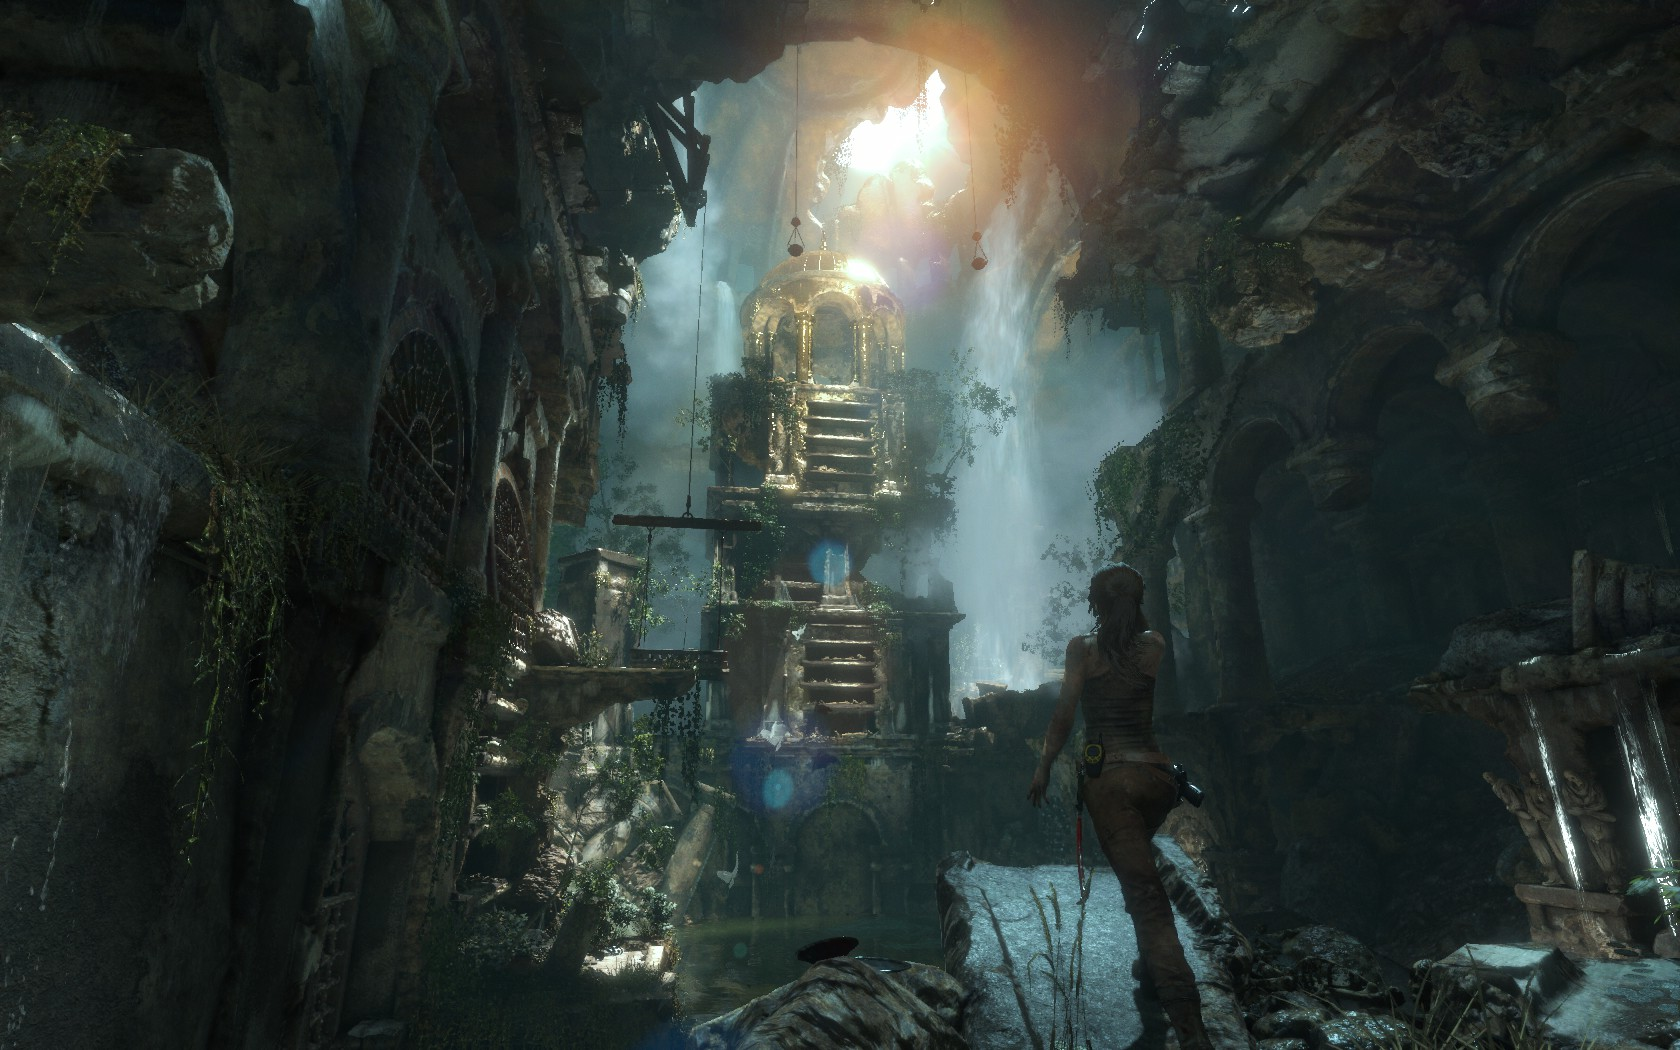 This is one of my best captures and really shows off the stunning environments in Tomb Raider